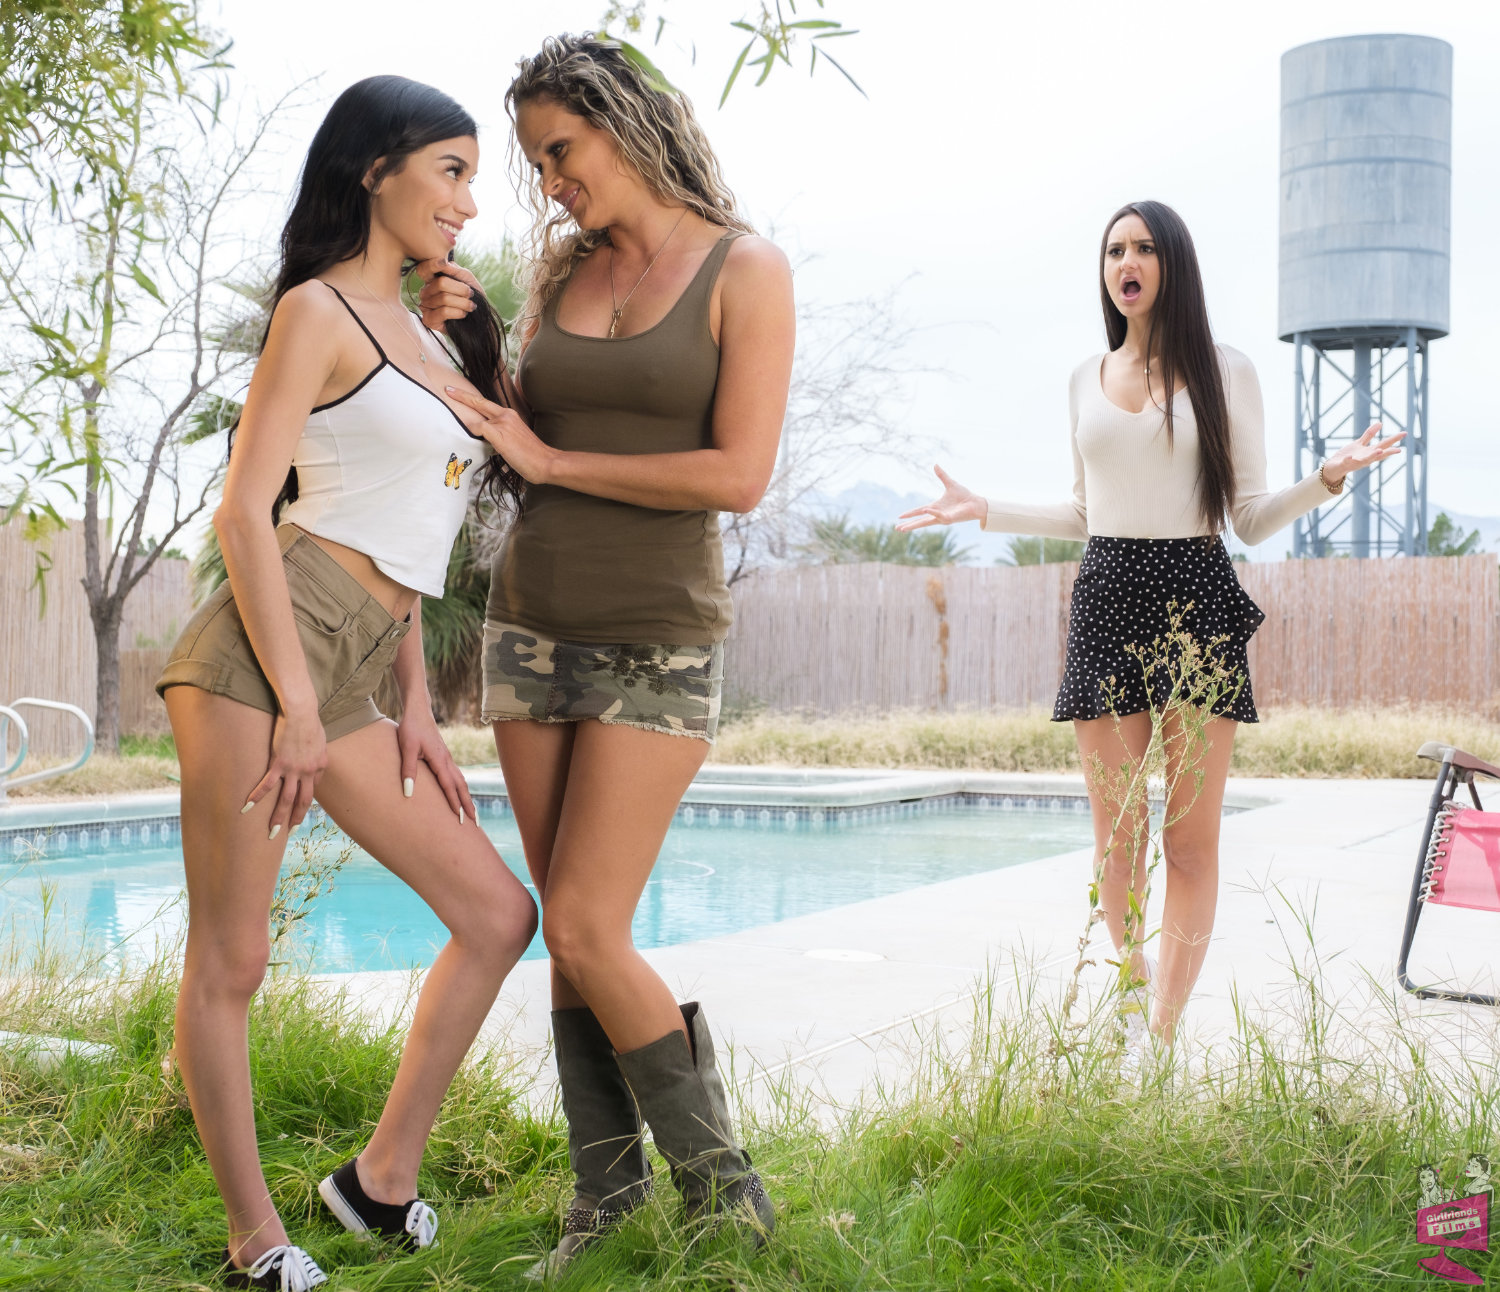 Eliza Ibarra, Prinzzess, and Savannah Sixx